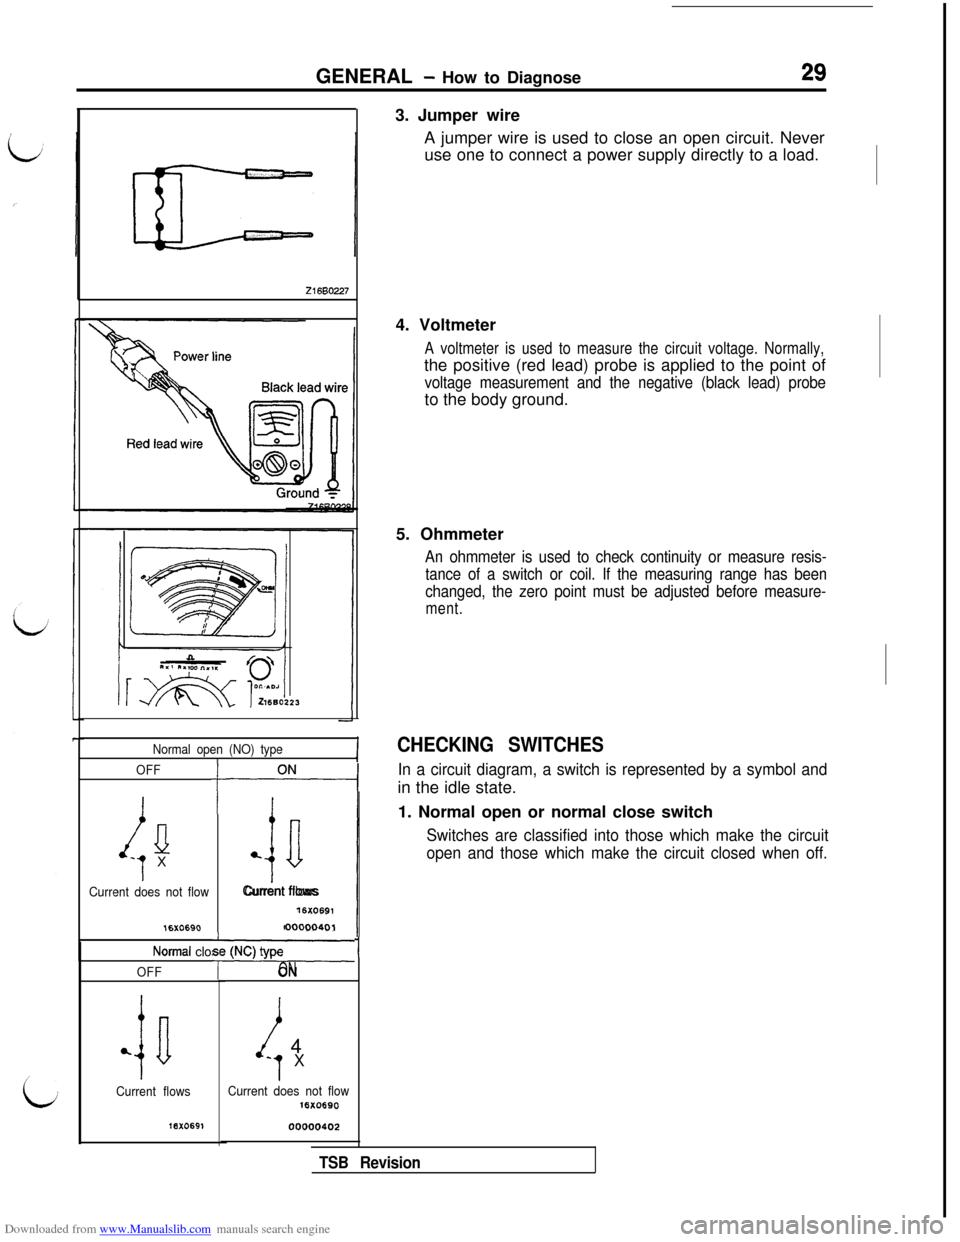 hight resolution of mitsubishi 3000gt 1994 2 g workshop manual page 31